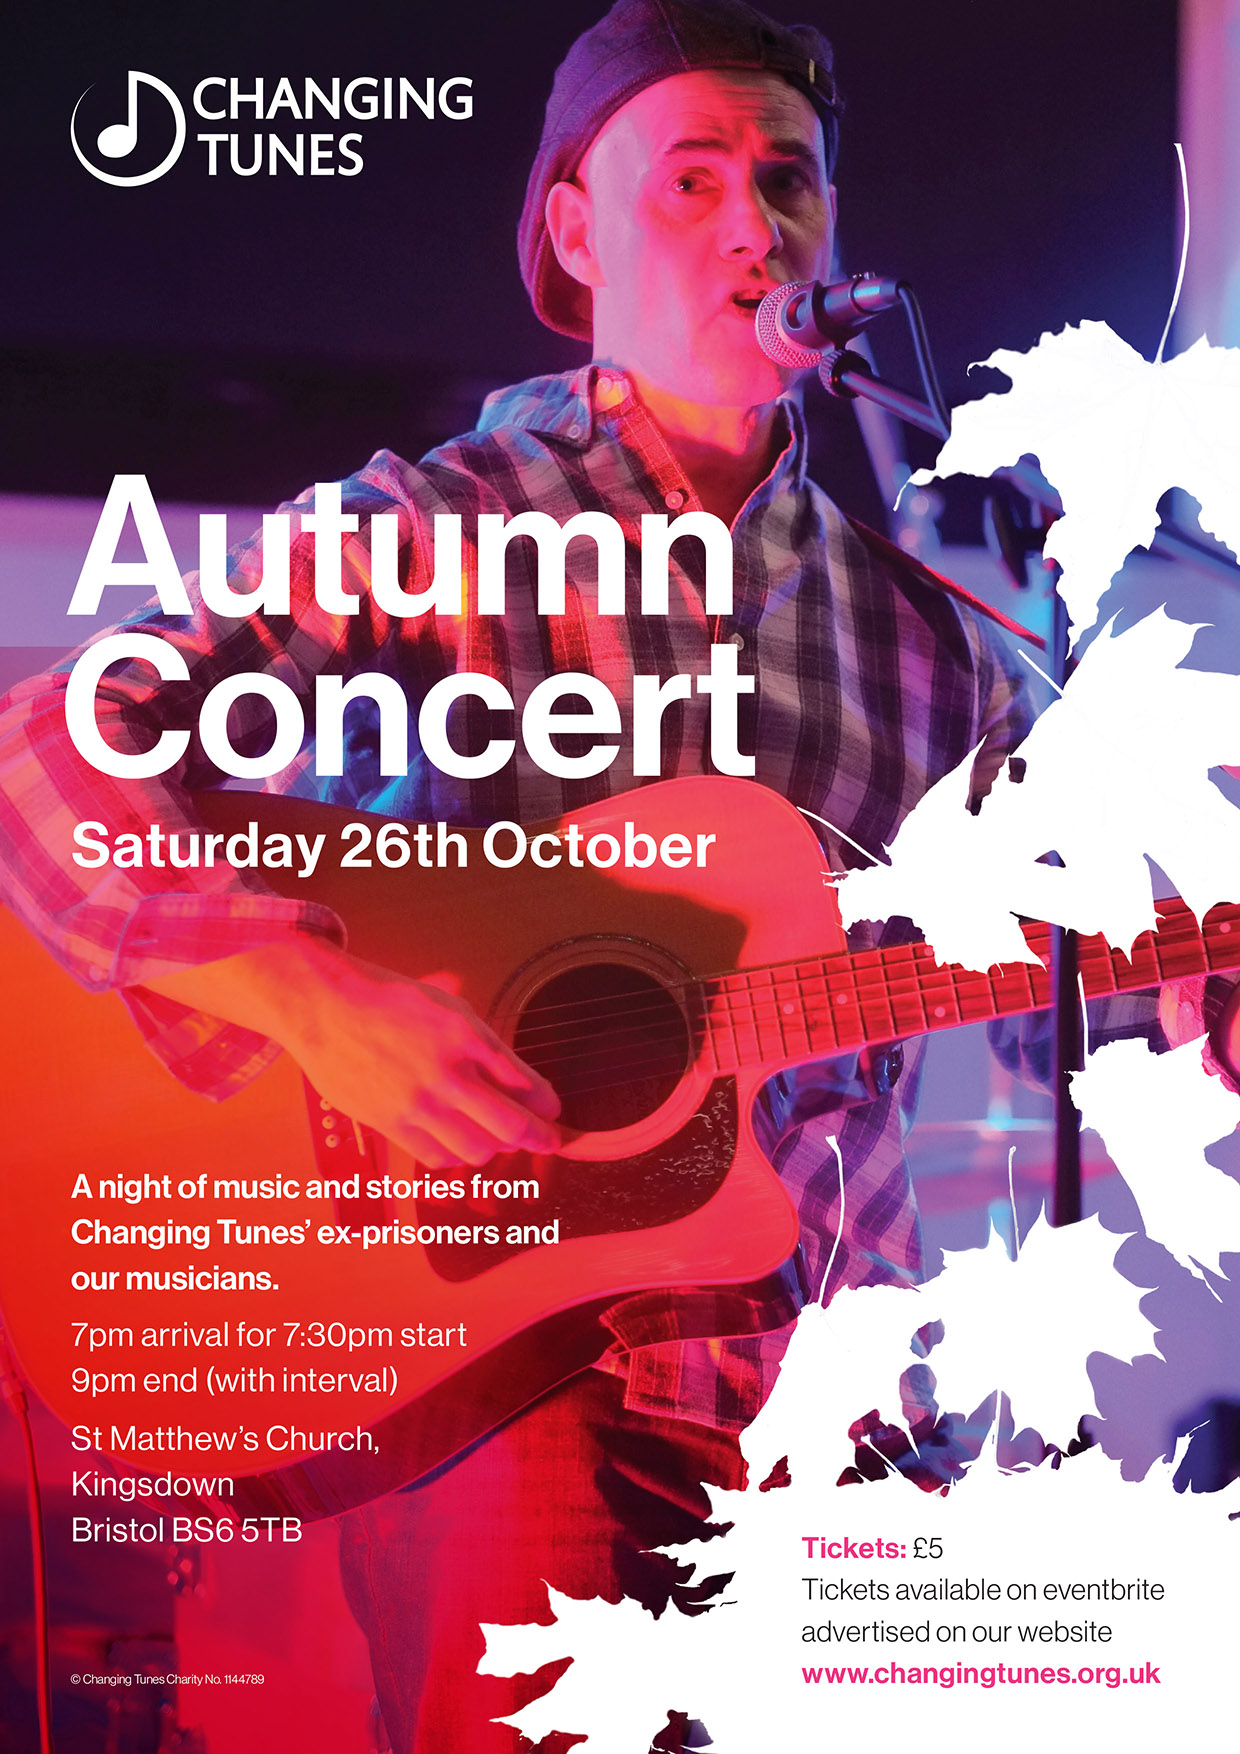 Autumn Concert - Saturday 26th October, 7.30pm St Matthew's Church, Bristol, BS6 5TBClick the link below to book your tickets!Changing Tunes presents an evening of live music, performed by ex-prisoners and our Musicians in Residence, demonstrating our transforming work in prison and in the local community.Whether you are new to Changing Tunes, or you have been a supporter for years, this concert promises an inspiring evening with a hopeful message.Book your £5 tickets here:https://www.eventbrite.co.uk/e/changing-tunes-autumn-concert-2019-tickets-74791456259?fbclid=IwAR1sYP1YYVQJn9-vdh-DA2A5V4l_17ipb3YFzoFe3S0nN8R4TRNwFim55mQ